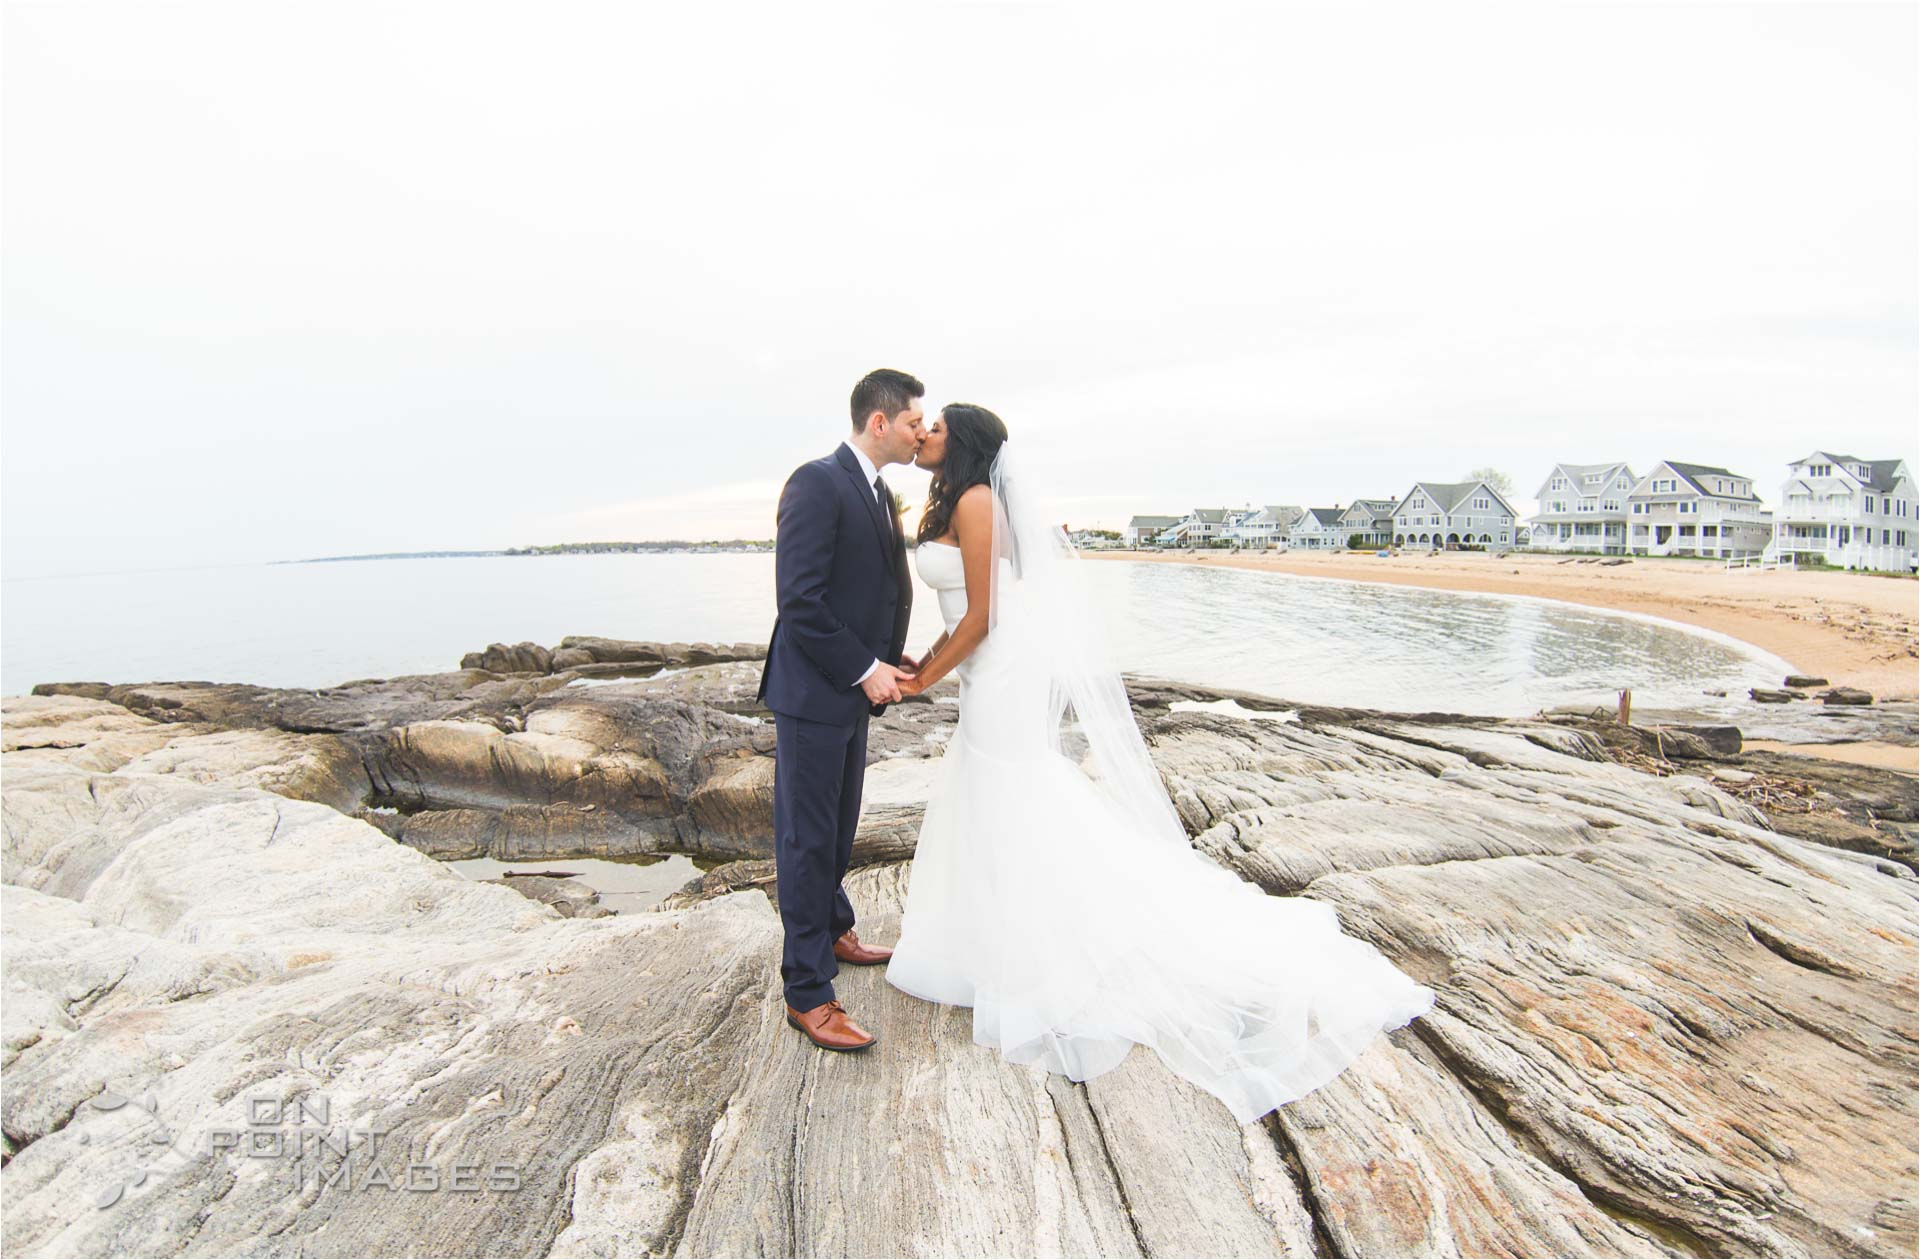 madison-beach-hotel-wedding-CT-28.jpg